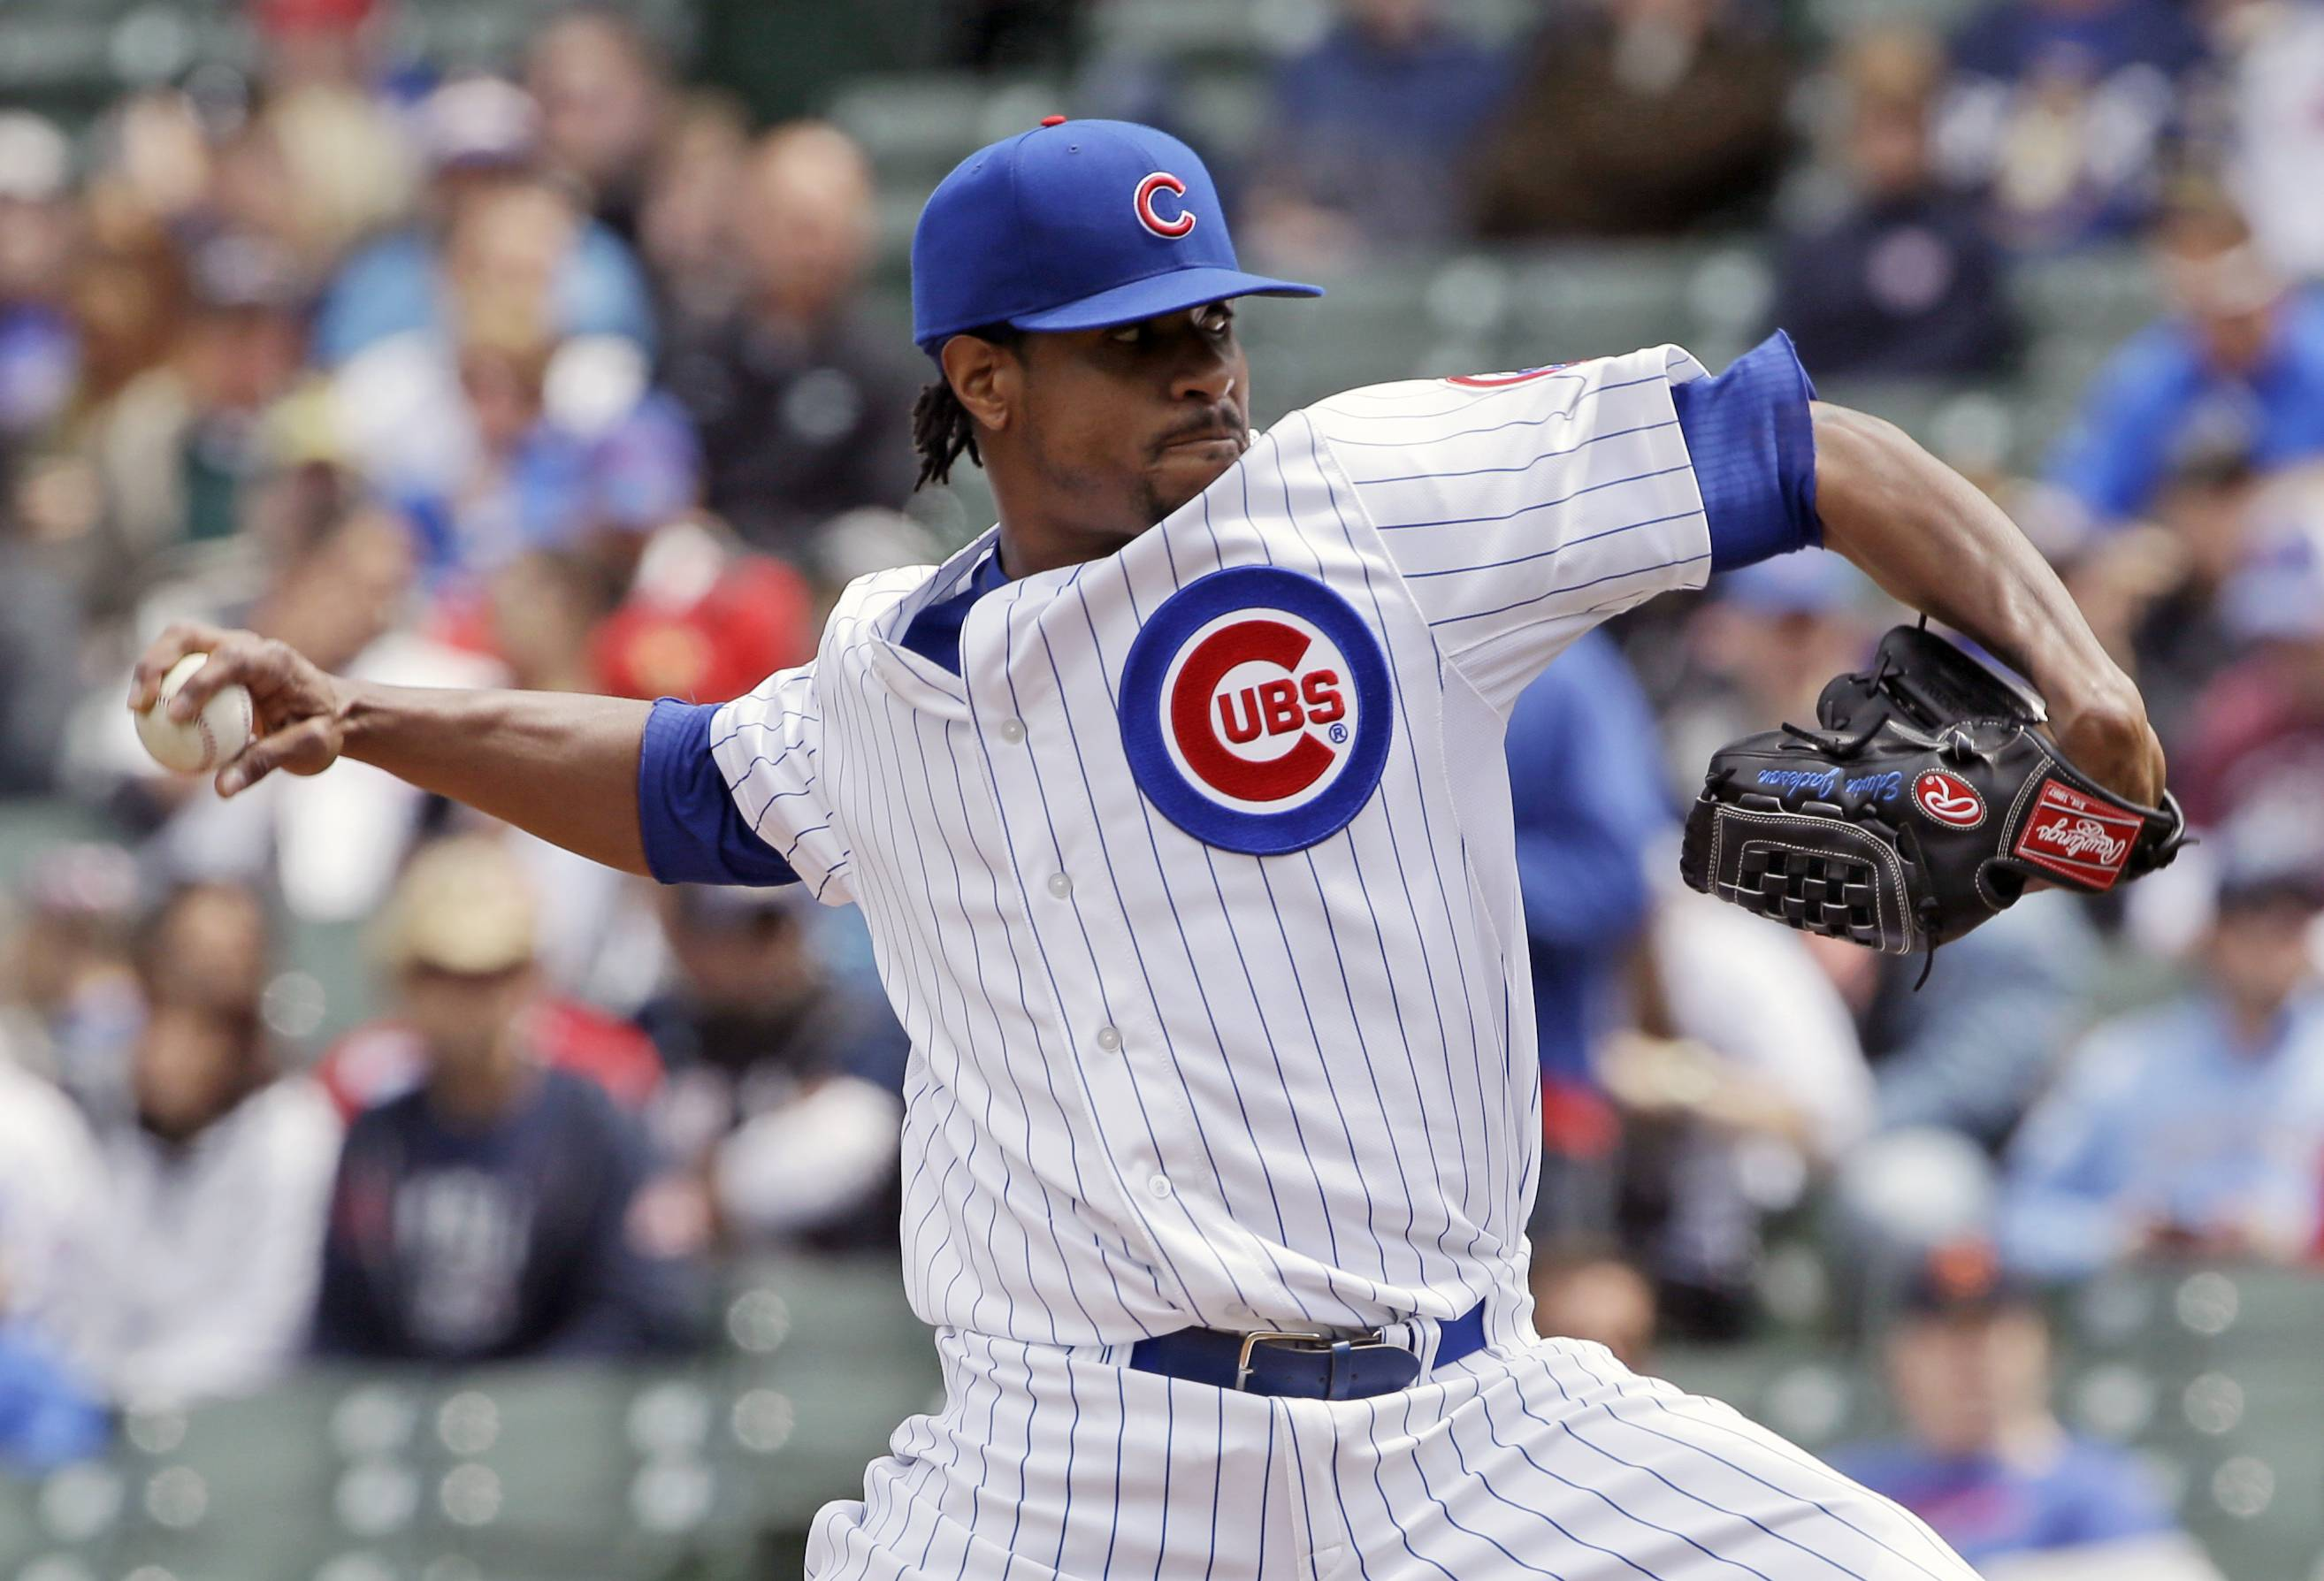 Edwin Jackson attacked Brewers hitters with a fastball that clocked up to 96 mph and a slider that broke and bit during his best start in his one-plus seasons with the Cubs. Jackson worked 7 scoreless innings, striking out 11 at Wrigley Field on Saturday.